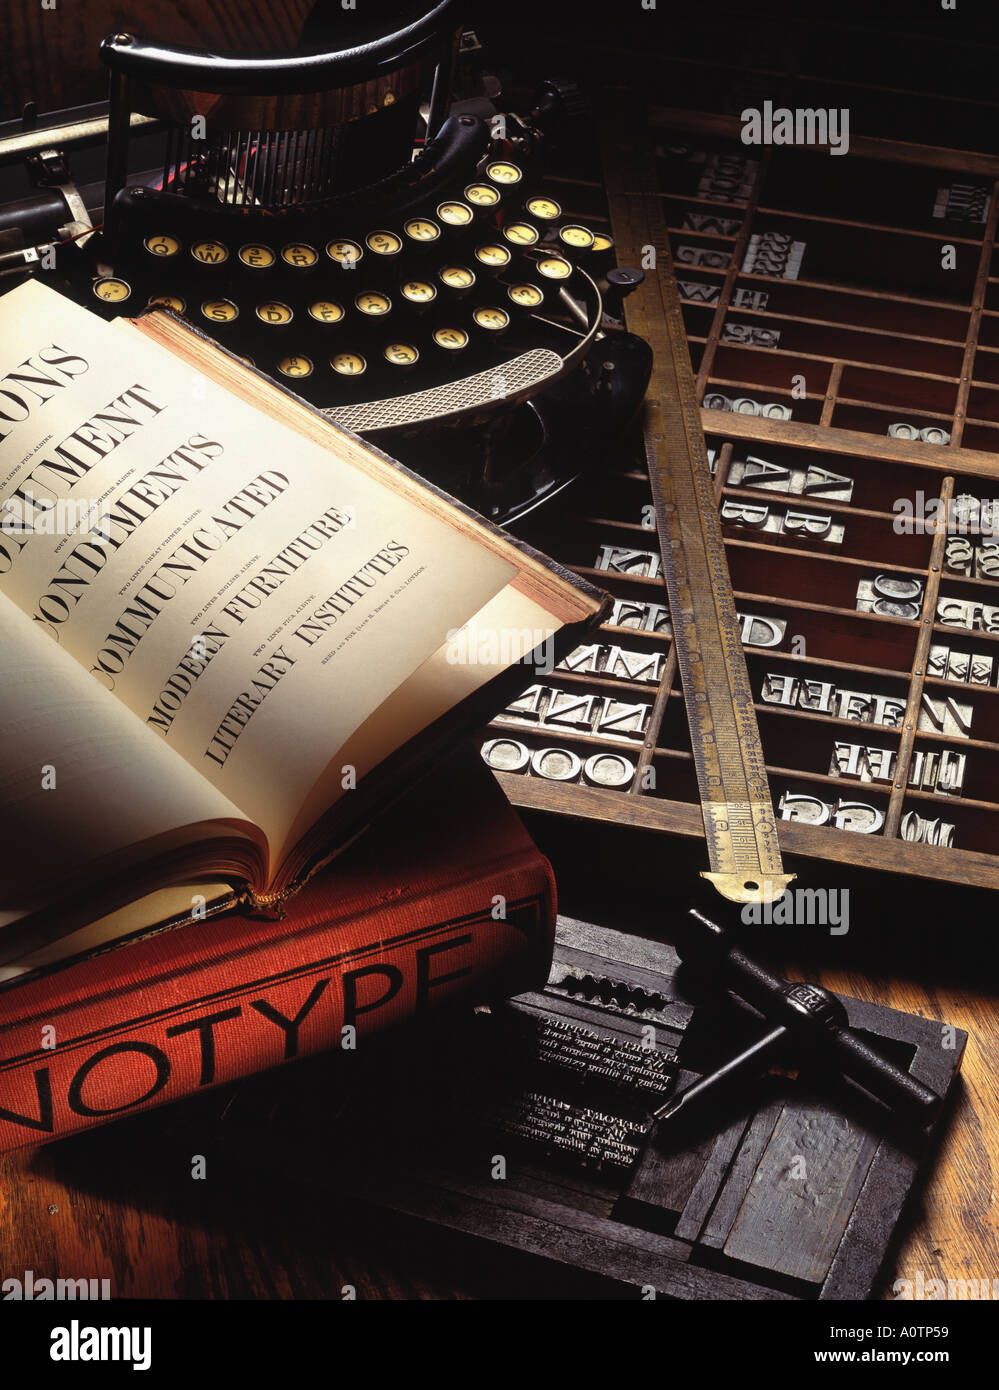 Still life of an antique typewriter along with typesetters tools and metal type - Stock Image